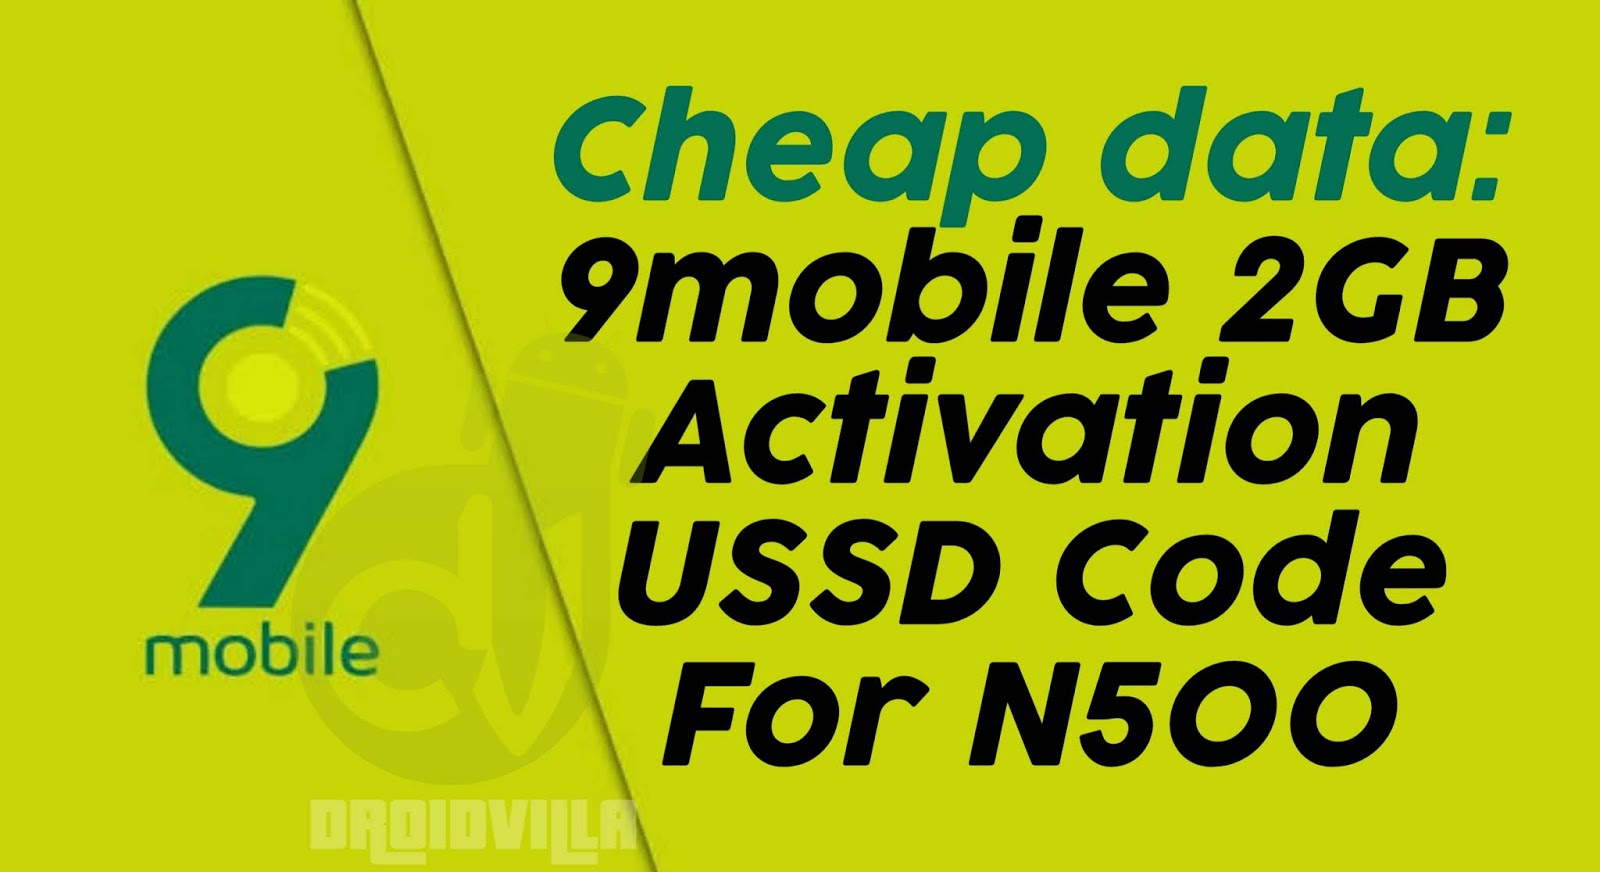 Cheap Data: 9mobile 2GB for N500 USSD Activation Code